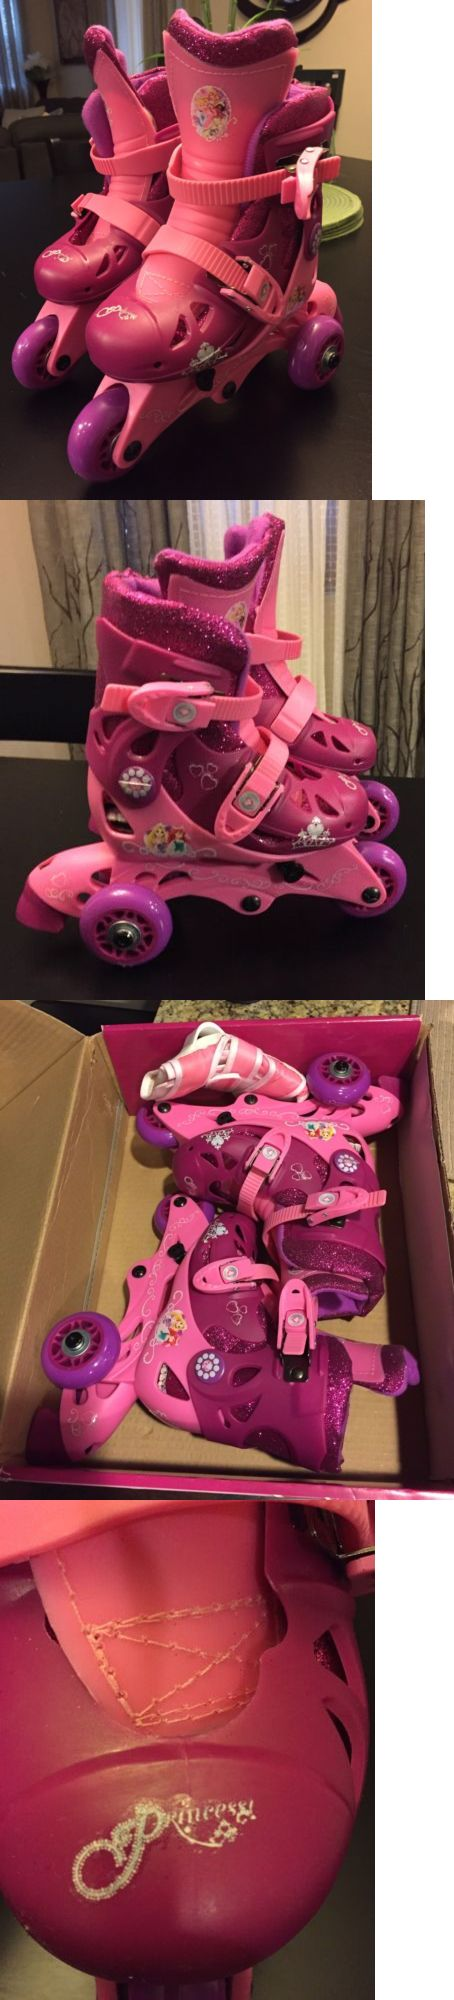 Indoor Roller Skating 165938: Playwheels Disney Princess Glitter Kids Convertible 2-In-1 Skates-Toddler Sz 6-9 -> BUY IT NOW ONLY: $45.99 on eBay!